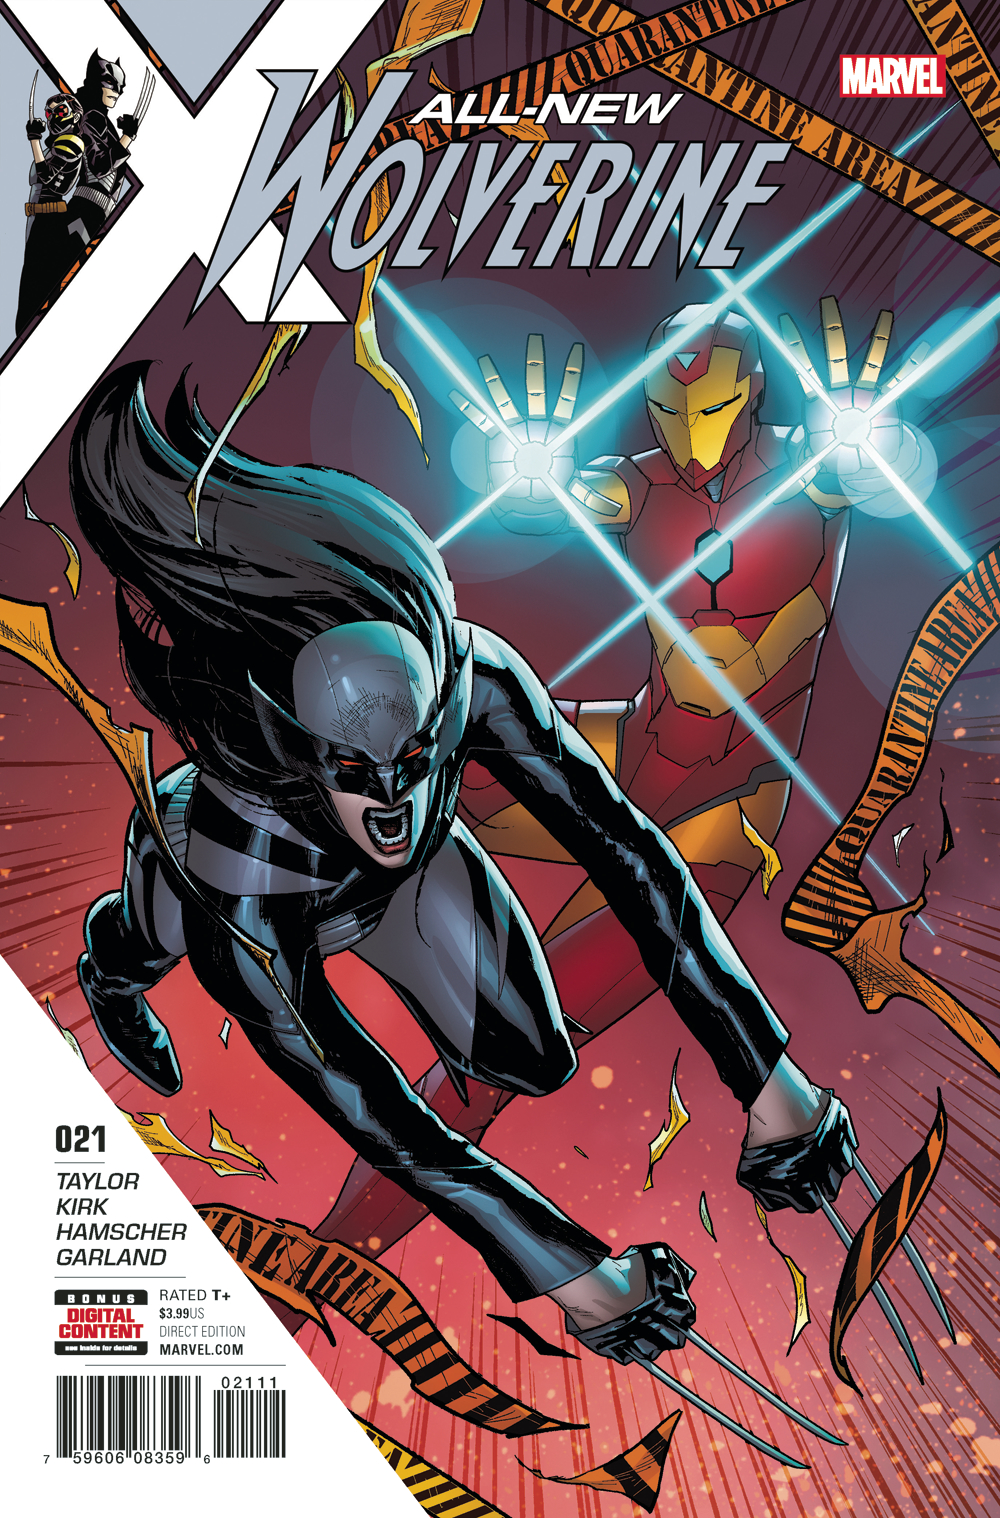 ALL NEW WOLVERINE #21